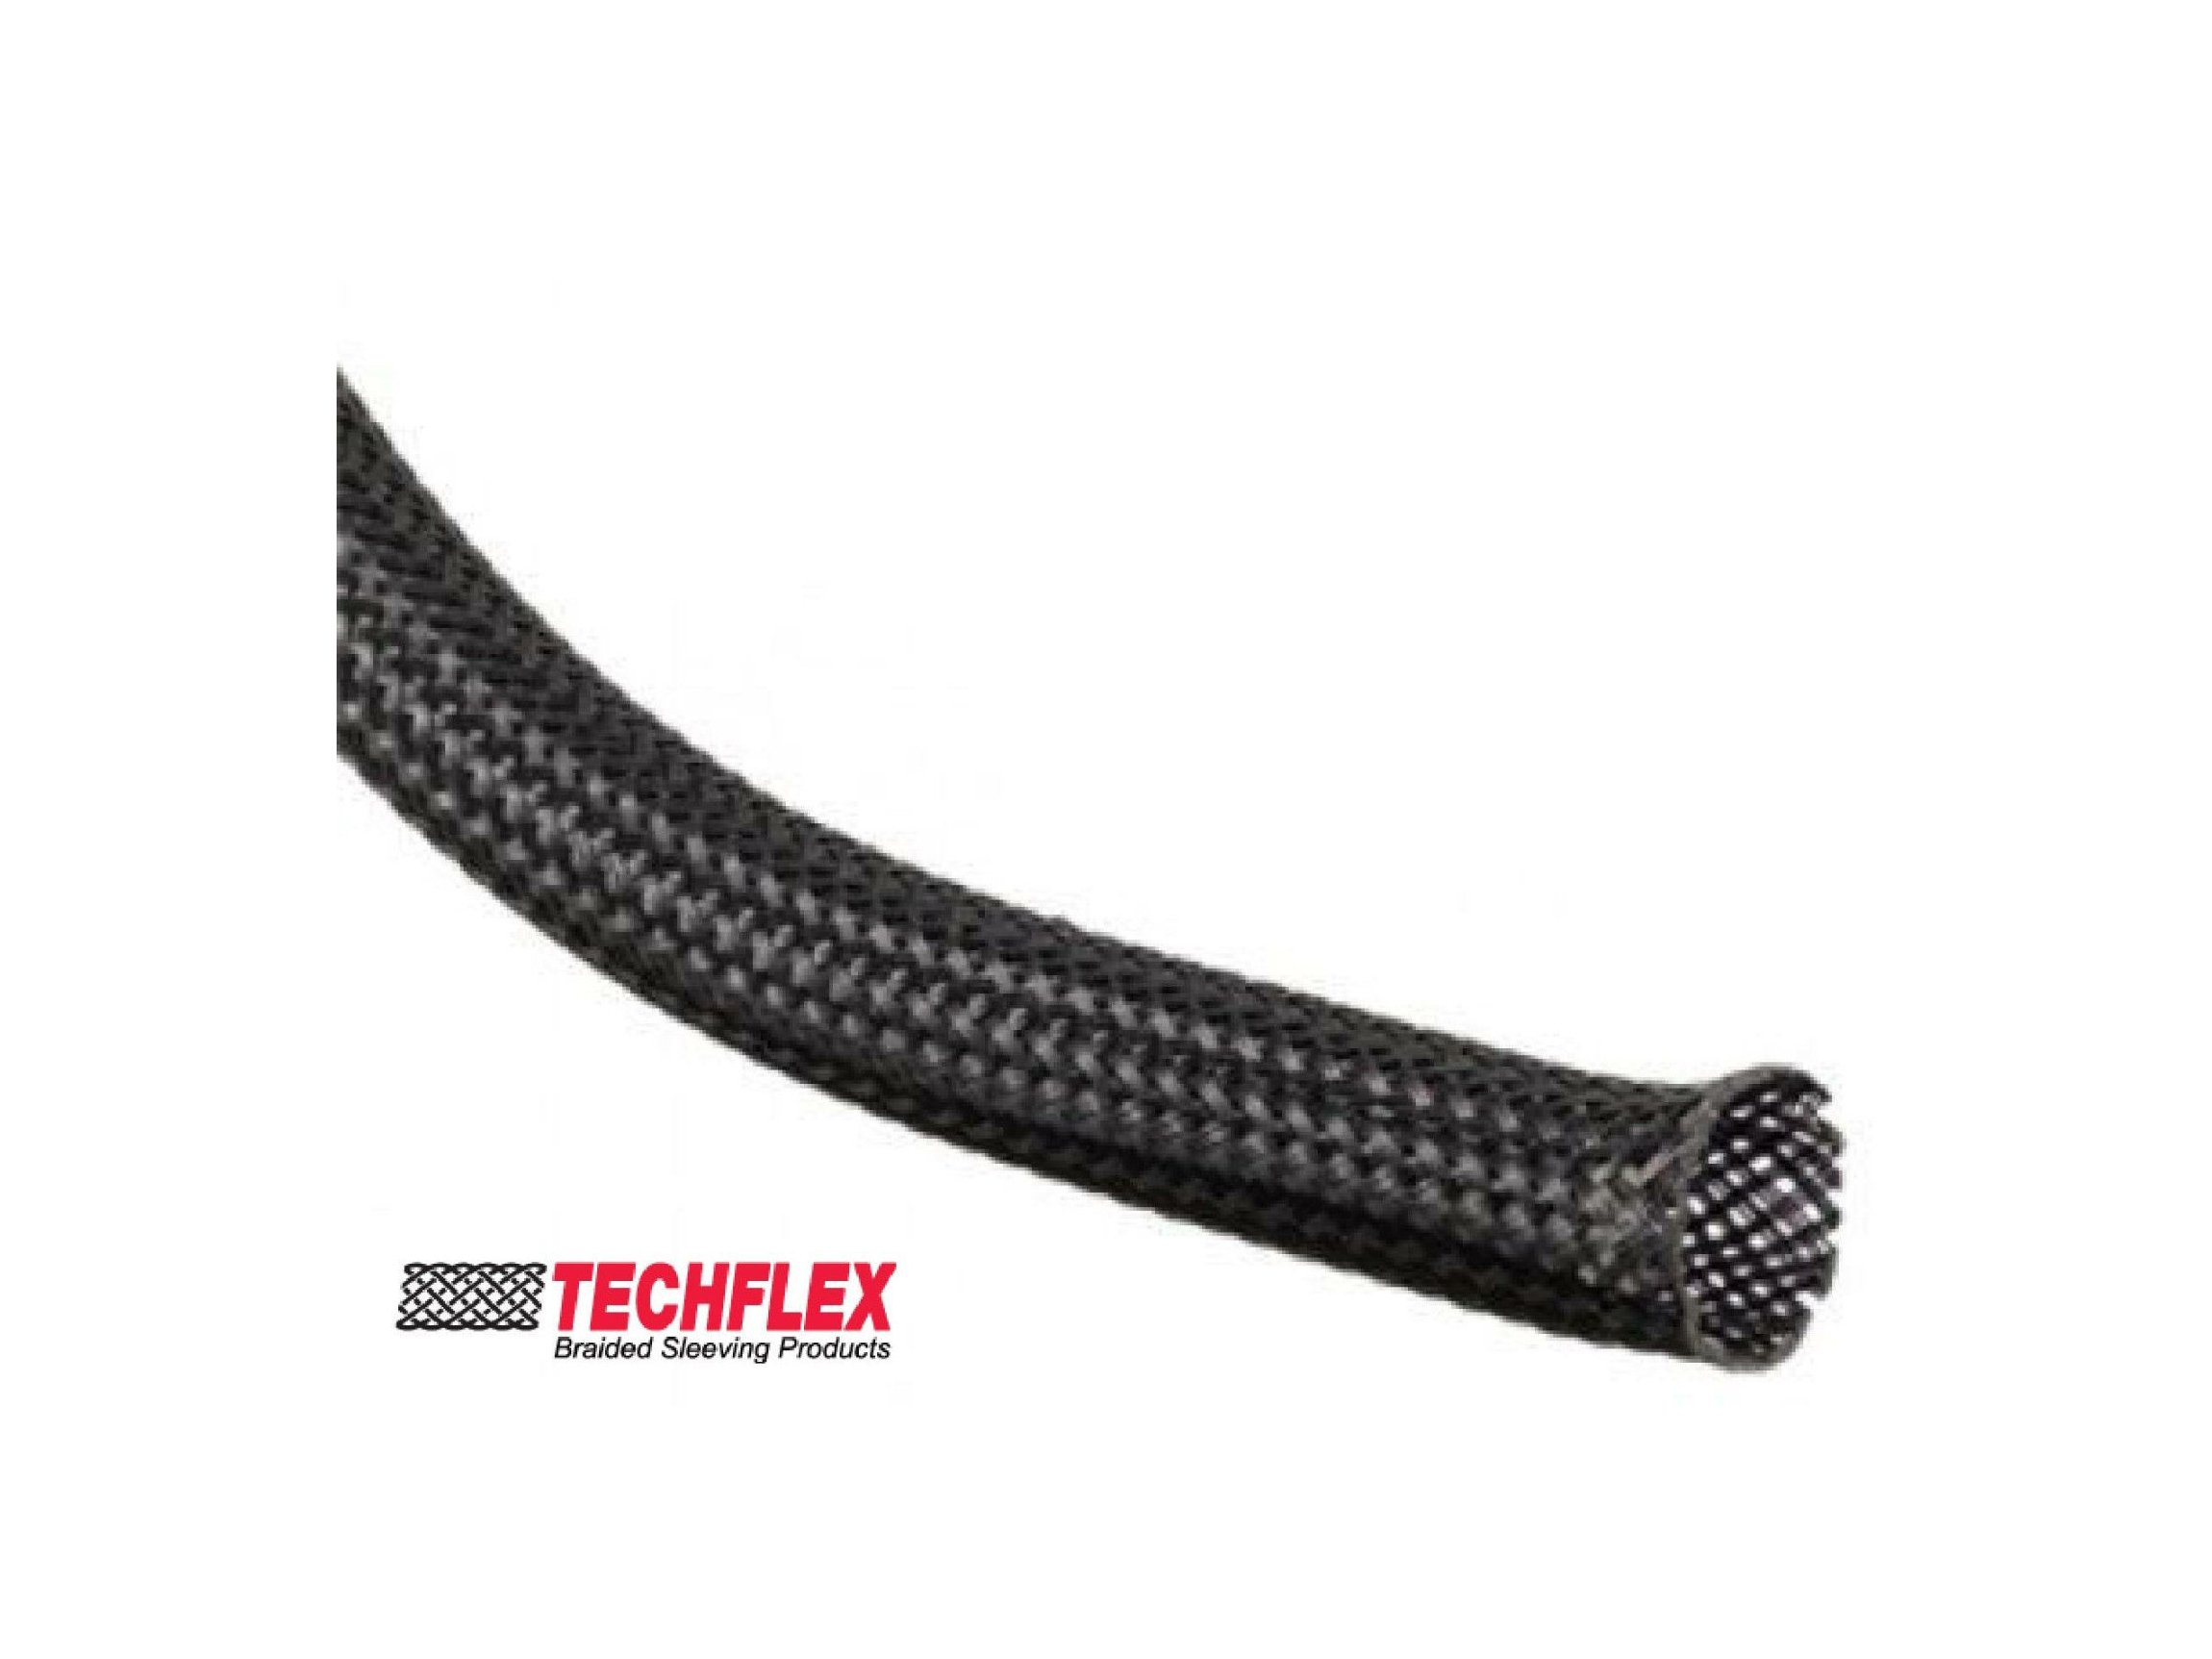 1/8 Techflex braided expandable sleeving ''Nylon'' (better than PET material) (1000FT)